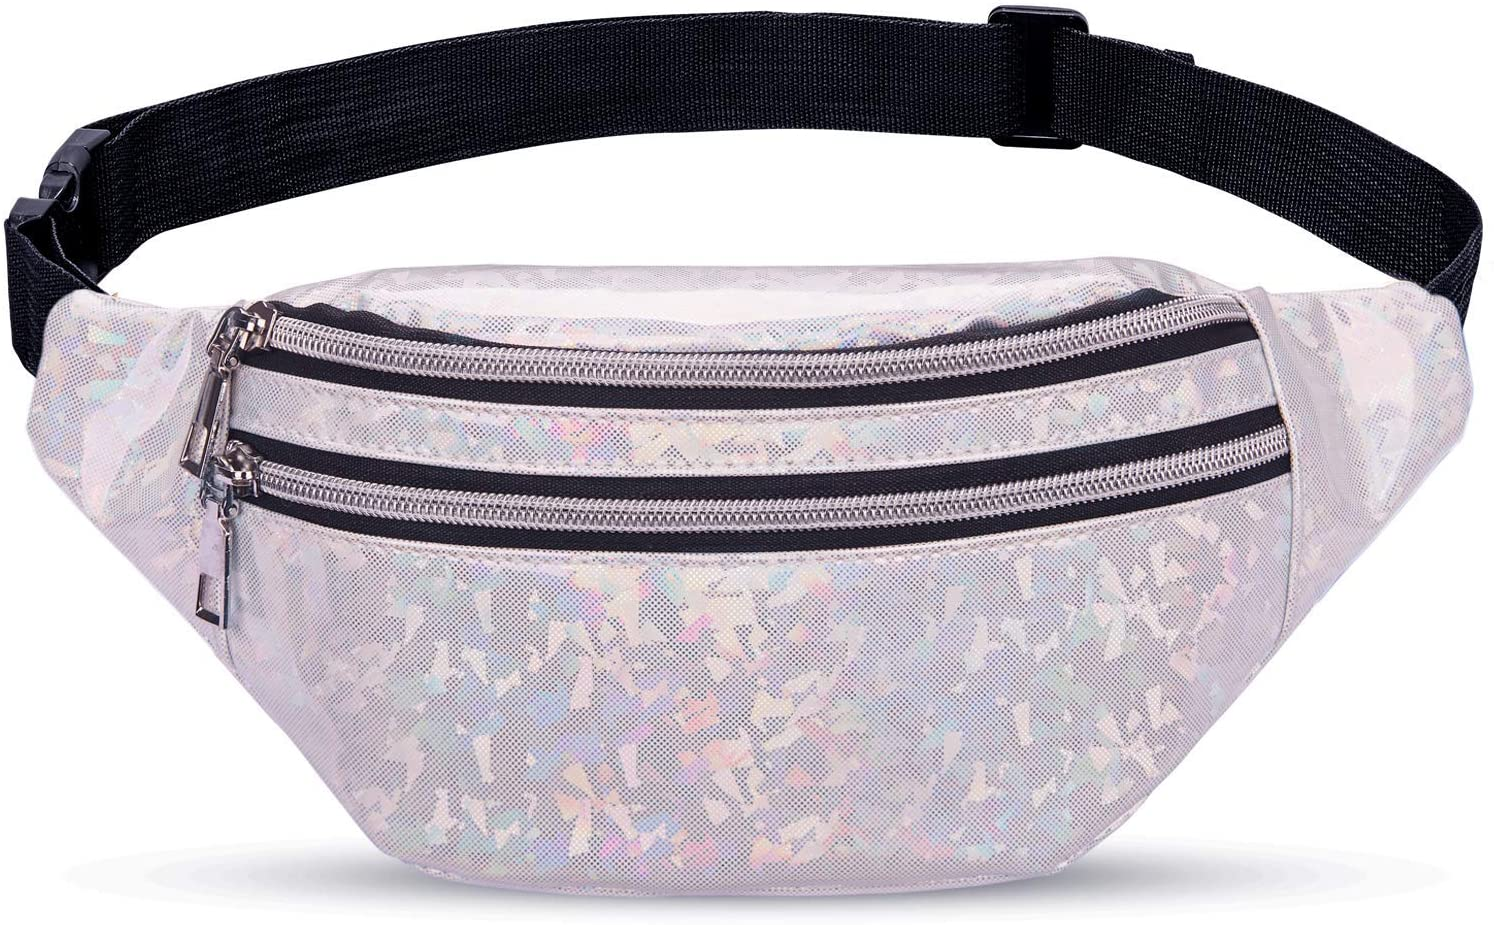 LIVACASA Fanny Packs for Women Girls Holographic Fanny Pack Shiny Fashinable Cute Stylish Waist Pack Bag for Women Kids Party Festival